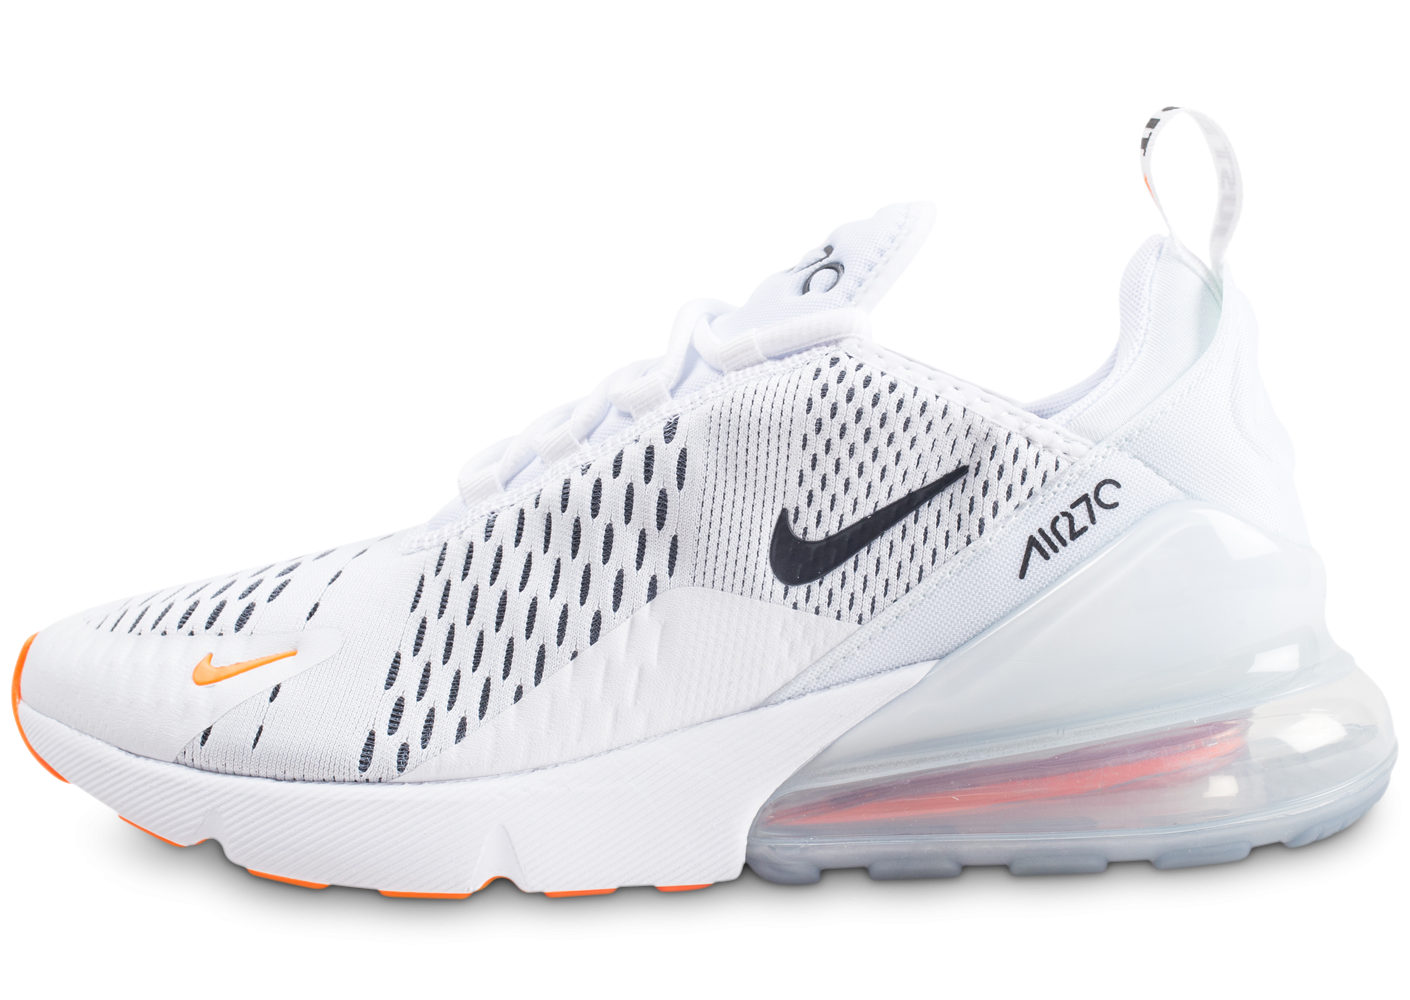 detailed look 4b937 a55e0 Nike Air Max 270 Just do It blanc total orange - Chaussures Baskets homme -  Chausport